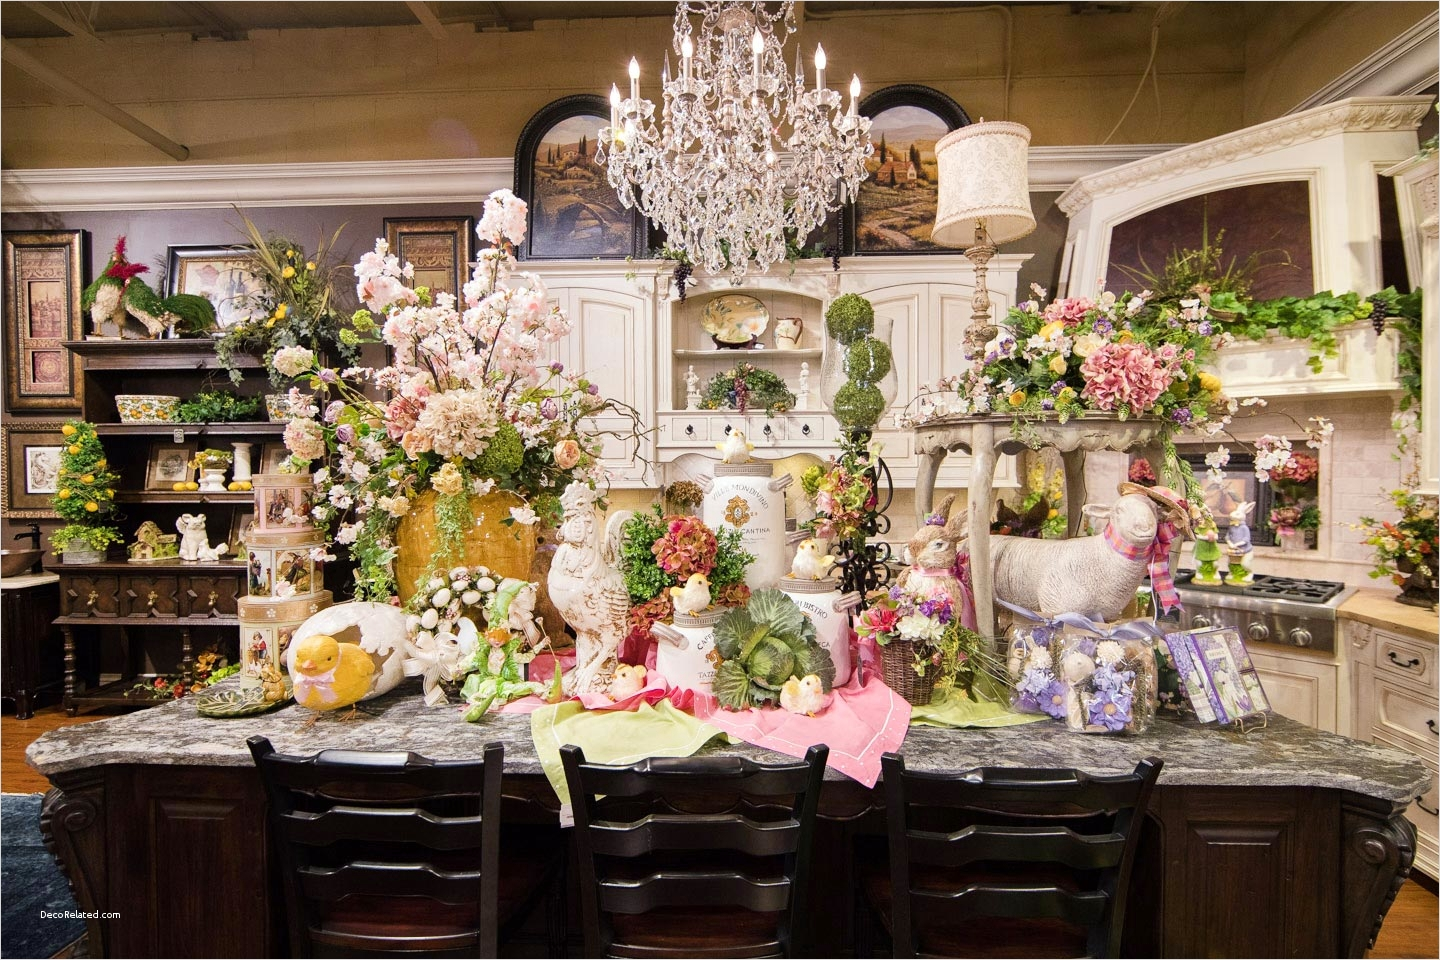 Spring Floral Bedroom Decor 61 2017 Open House Blooming with Spring Decorations 8